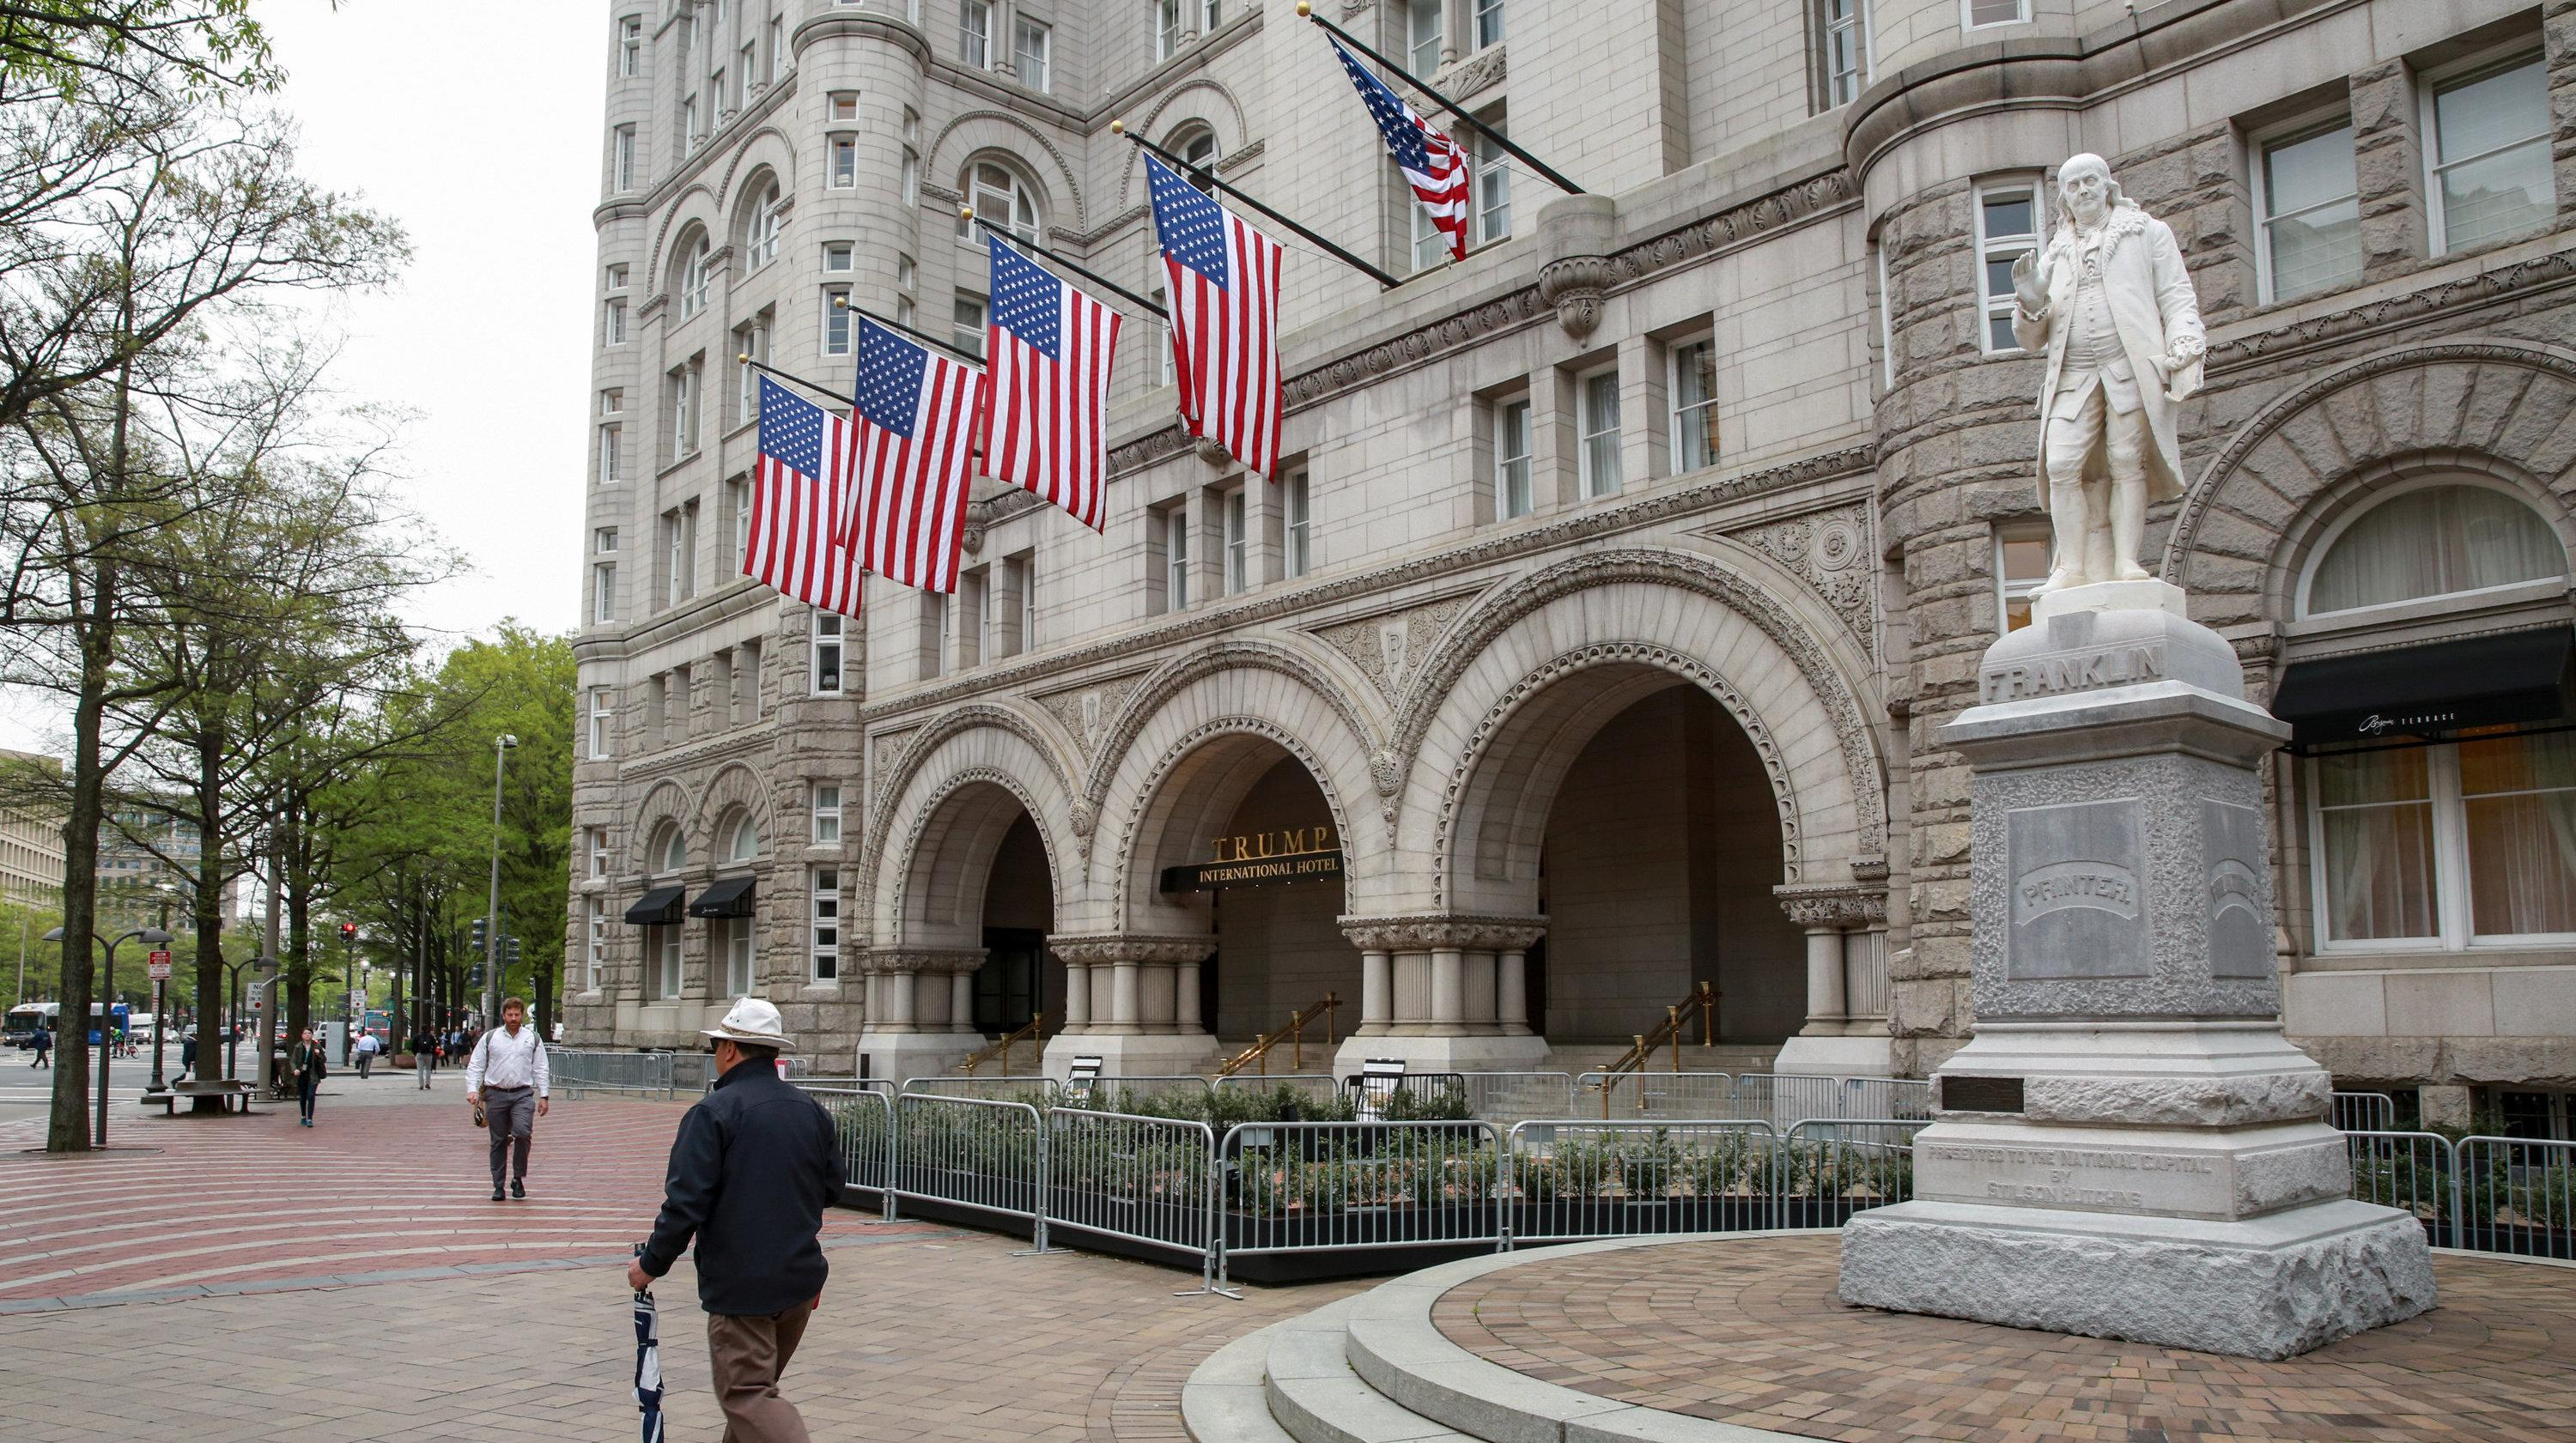 GOP Groups And Campaigns Have Spent At Least $4.7 Million On Trump Properties